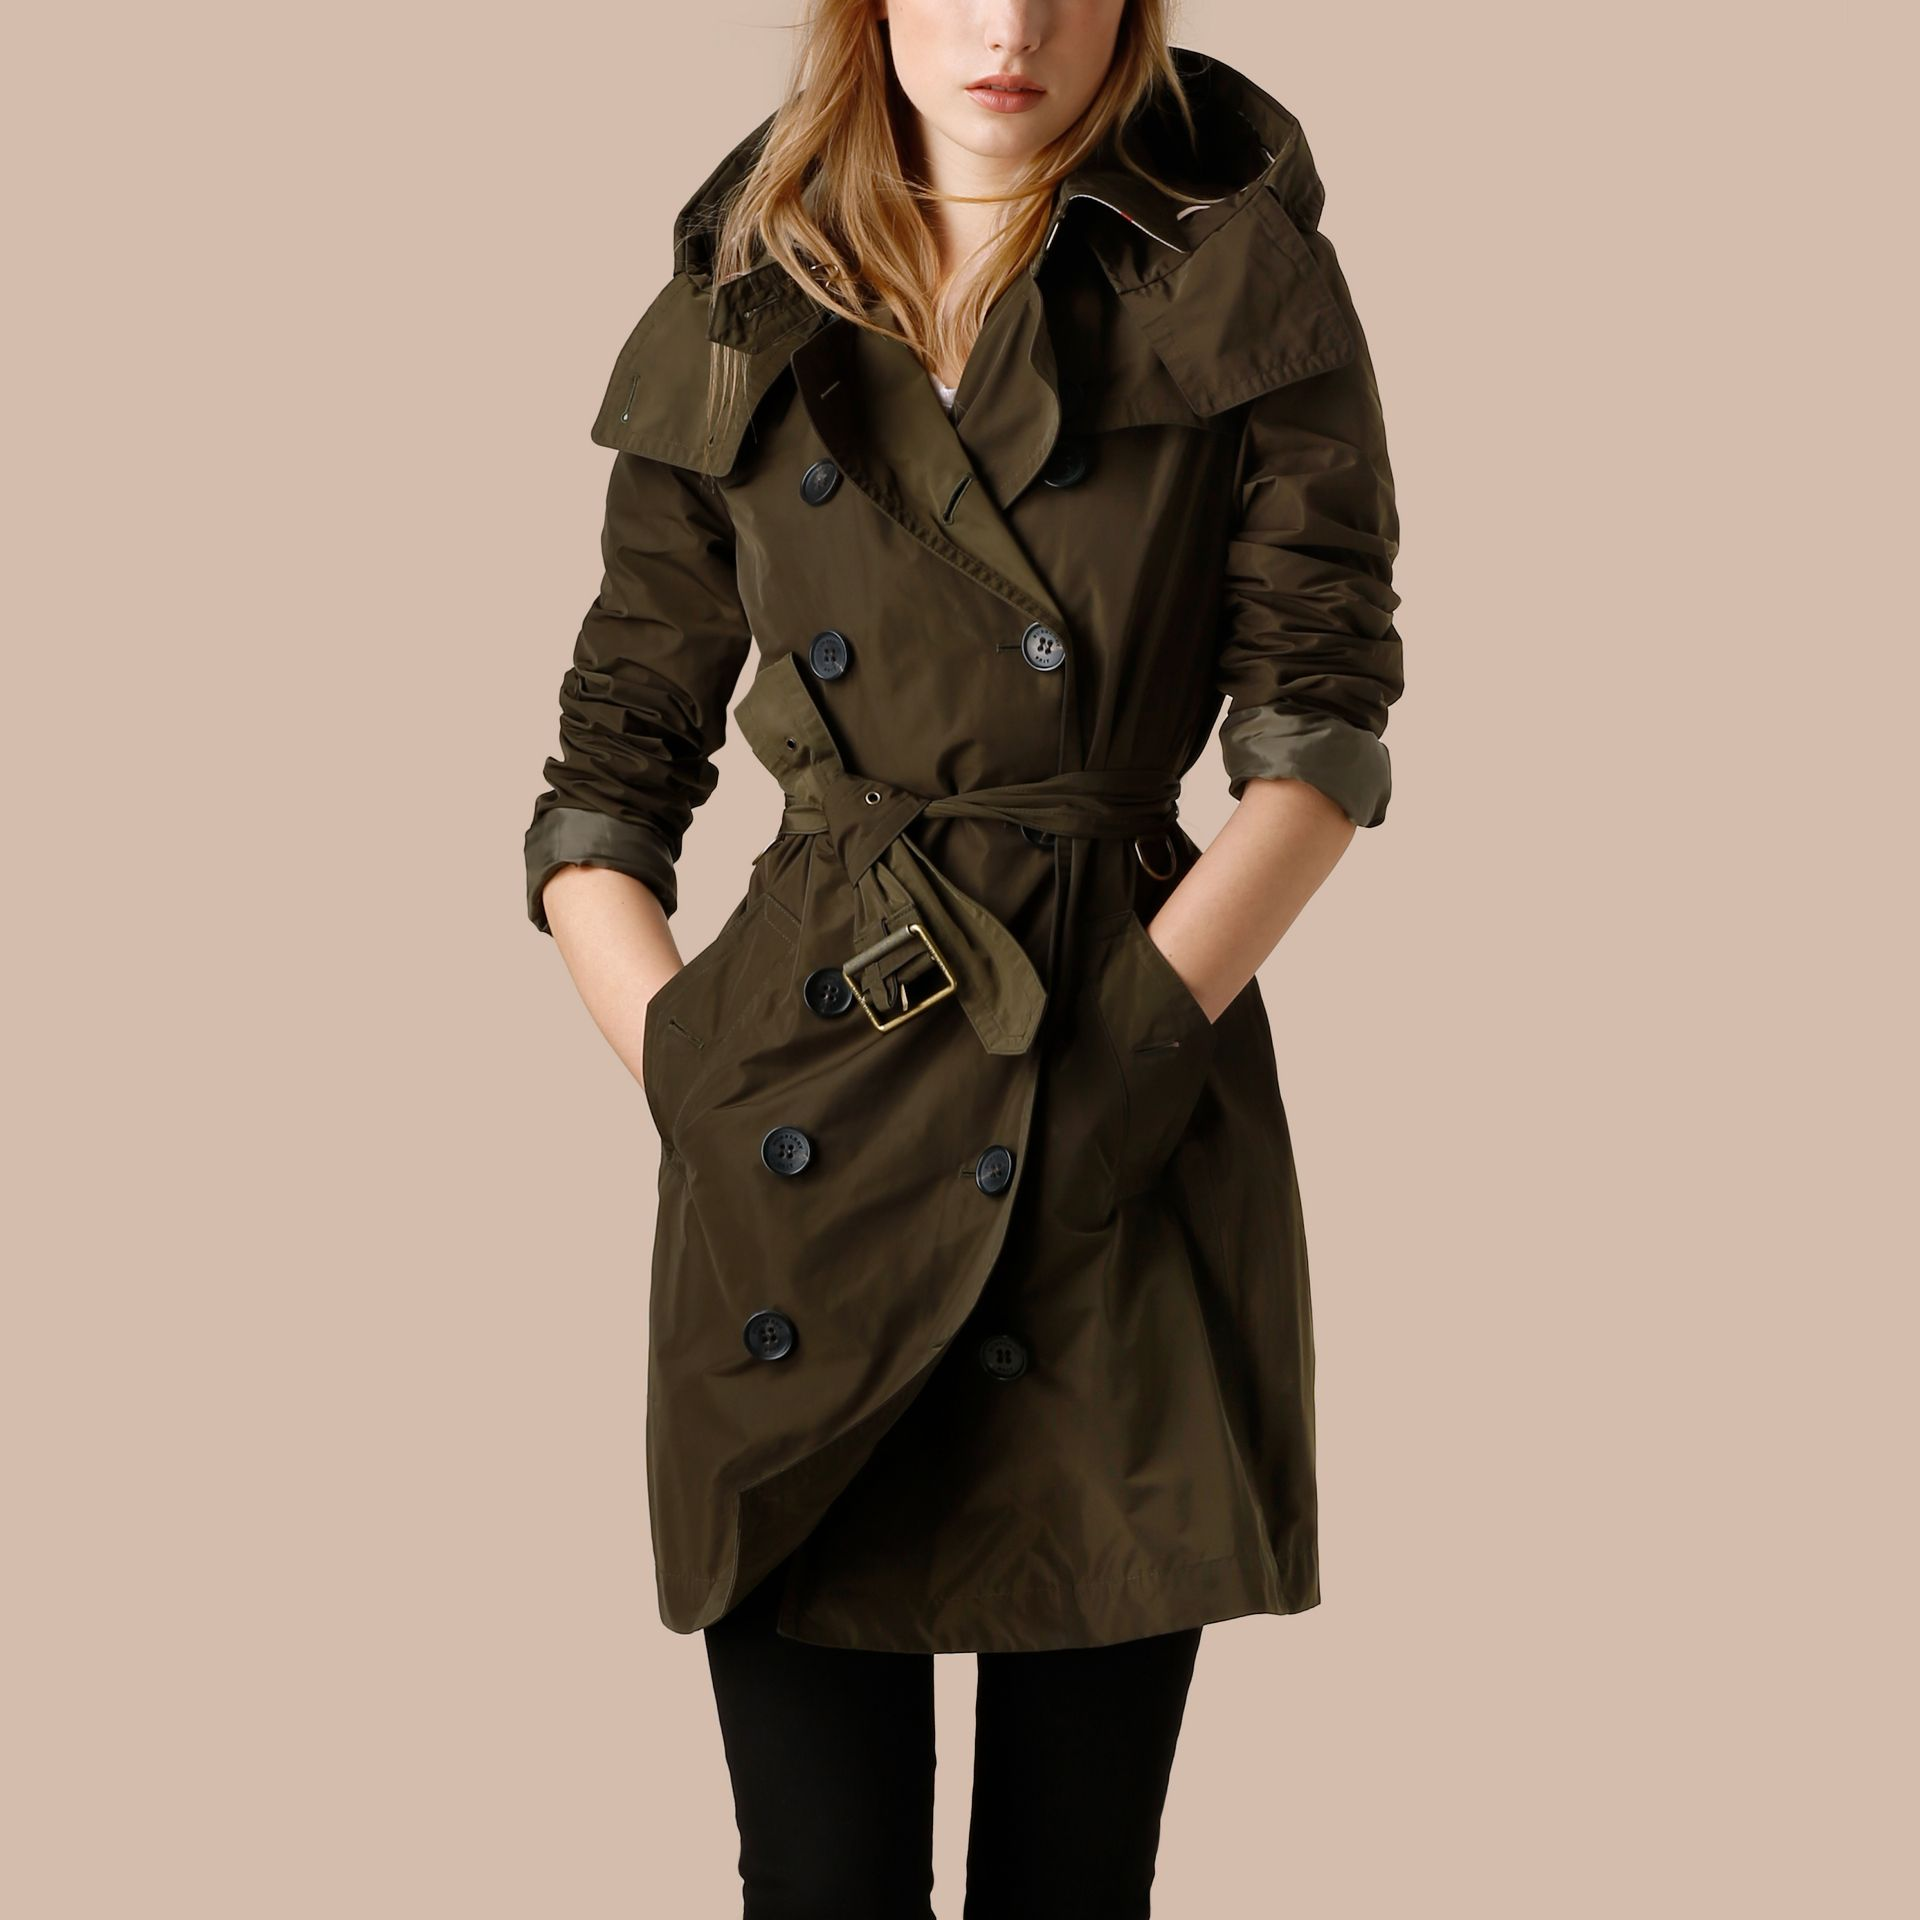 Taffeta Trench Coat with Detachable Hood Dark Olive - gallery image 4